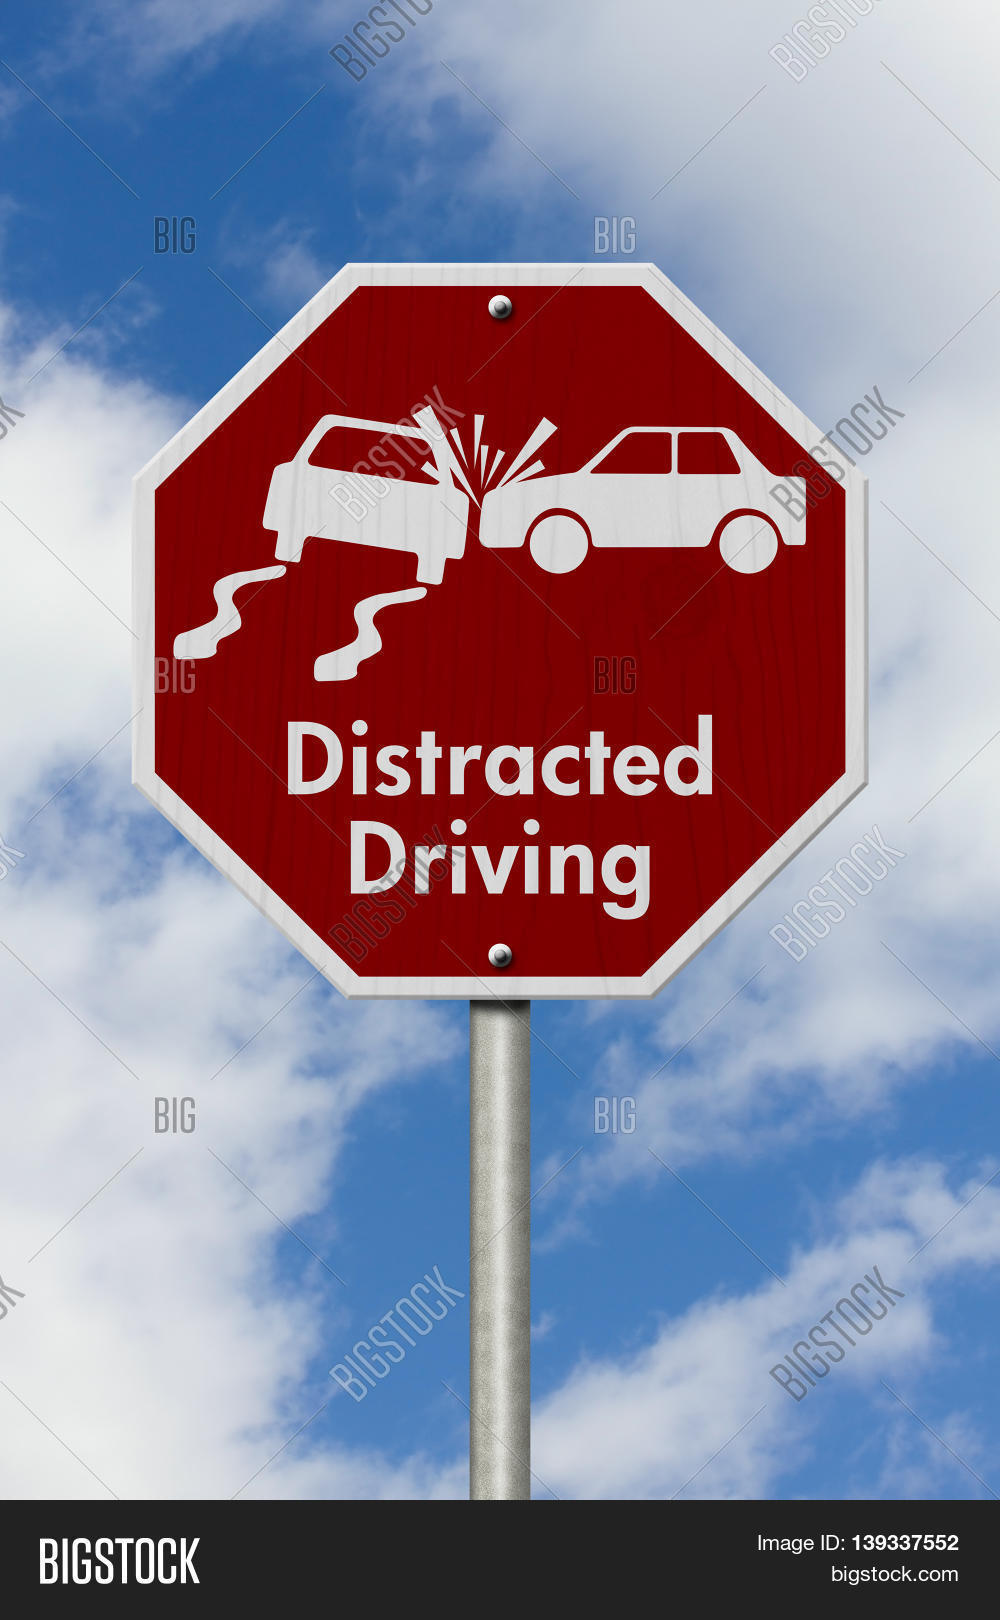 how to stop distracted driving